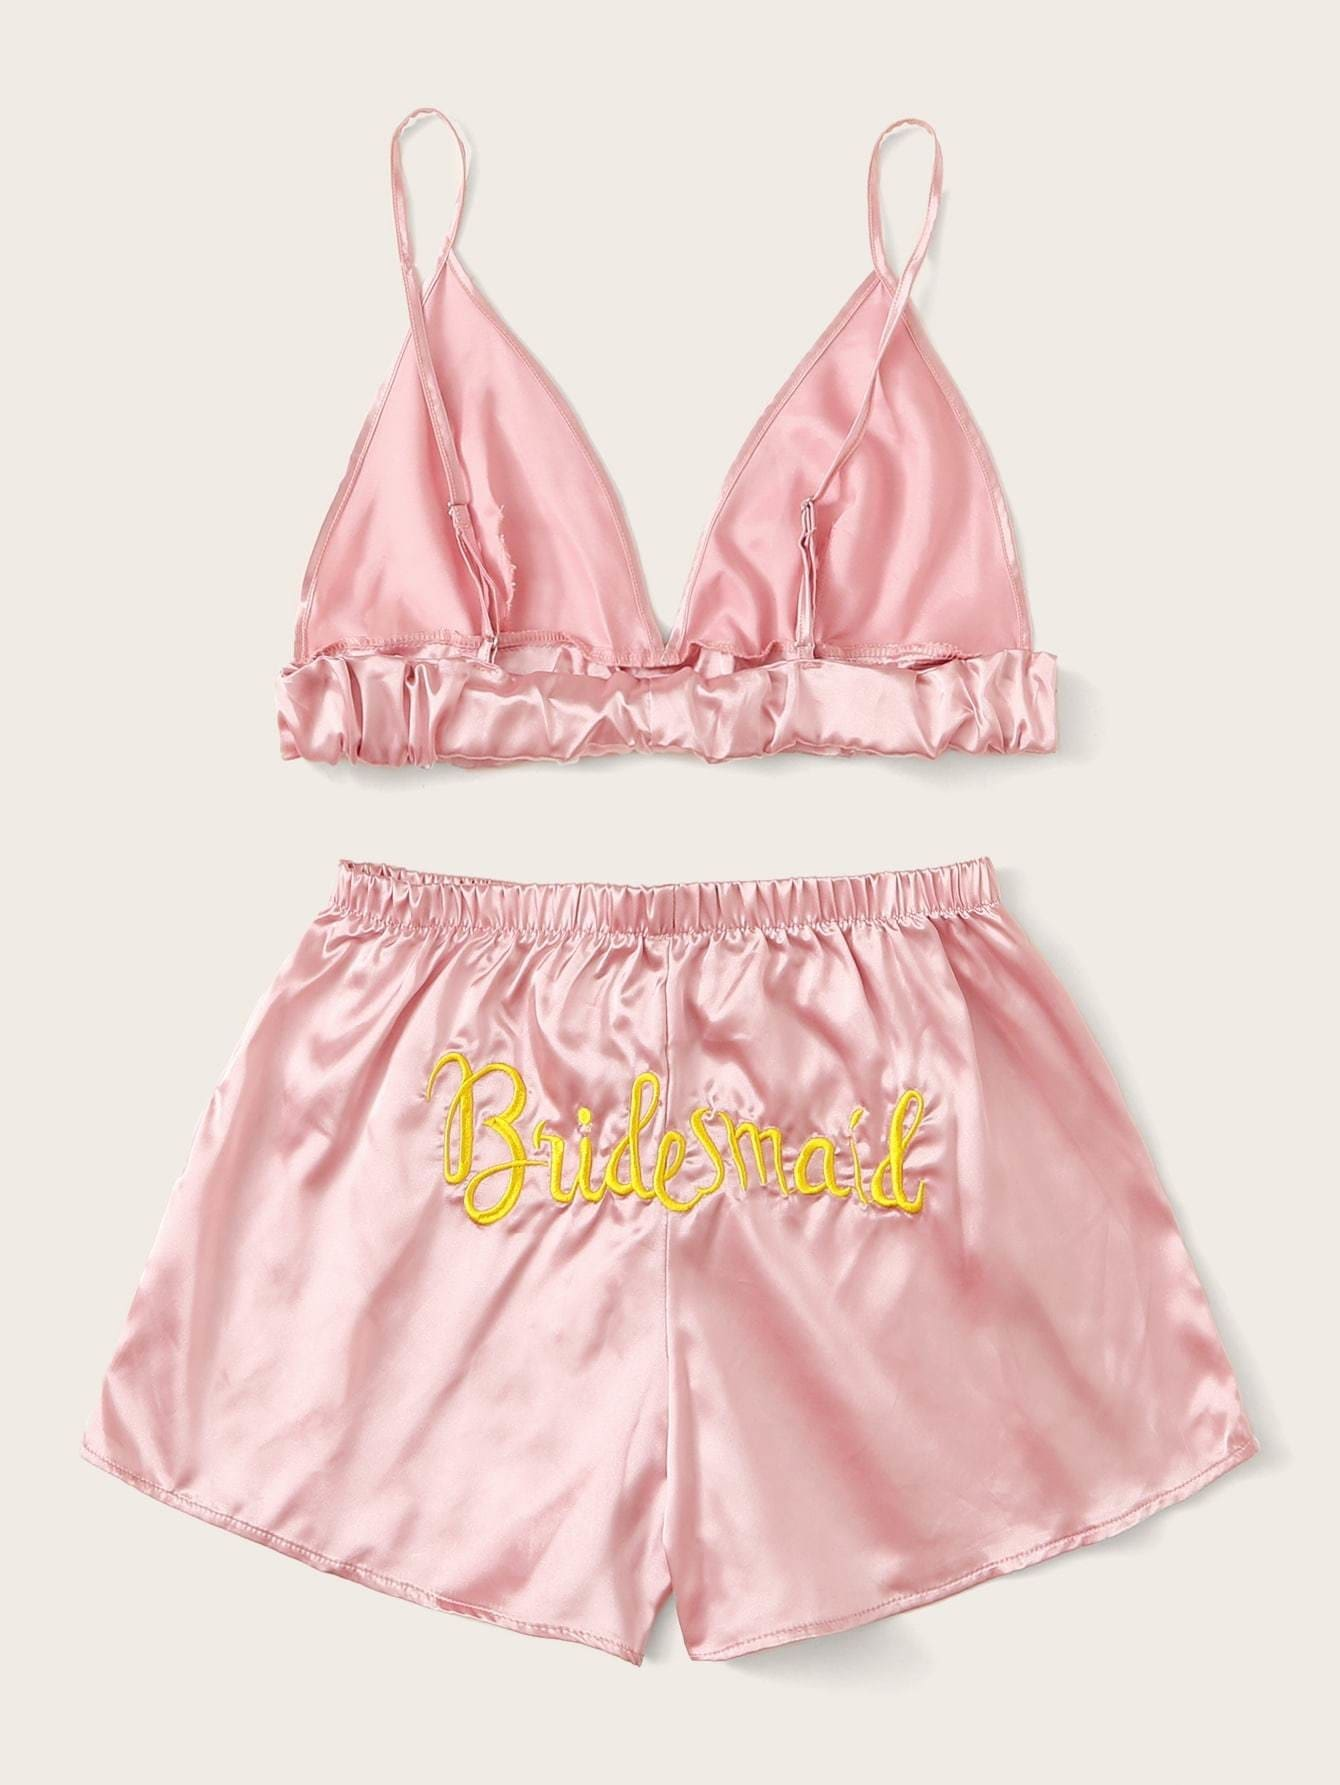 Letter Embroidered Back Satin Lingerie Set - S - Nightwears